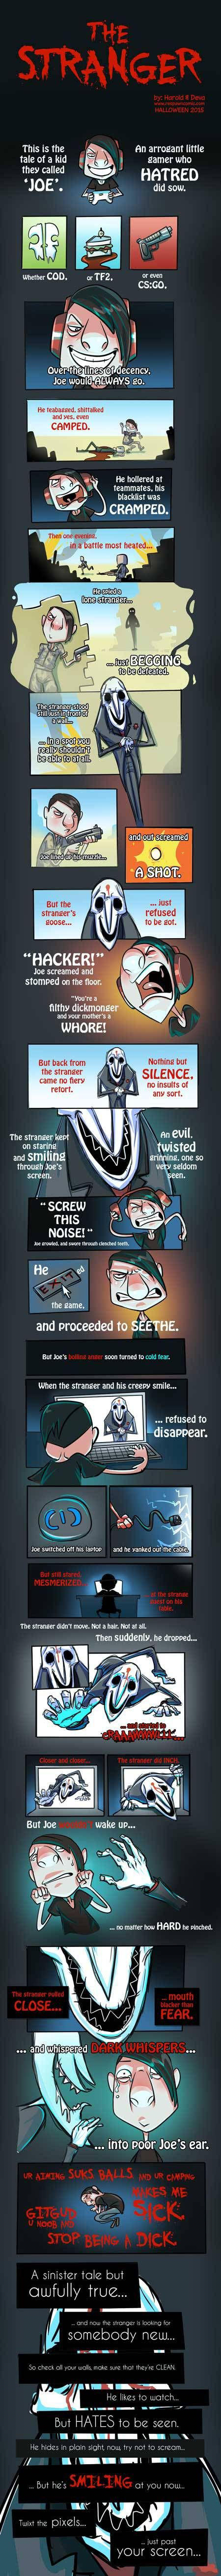 "This is an illustrated Halloween poem about a gamer named Joe and astanger he meets online. It's called ""The Stranger"". Here it is reproduced ad verbatim. This is a tale of a kid they called 'Joe'. An arrogant little gamer who hatred did sow. Whether COD of TF2 or even CS:GO, Over the lines of decency Joe would always go. He teabagged, shittalked and yes, even camped. He hollered at teammates, his blacklist was cramped. Then one evening, in a battle most heated, he spied a lone Stranger…"